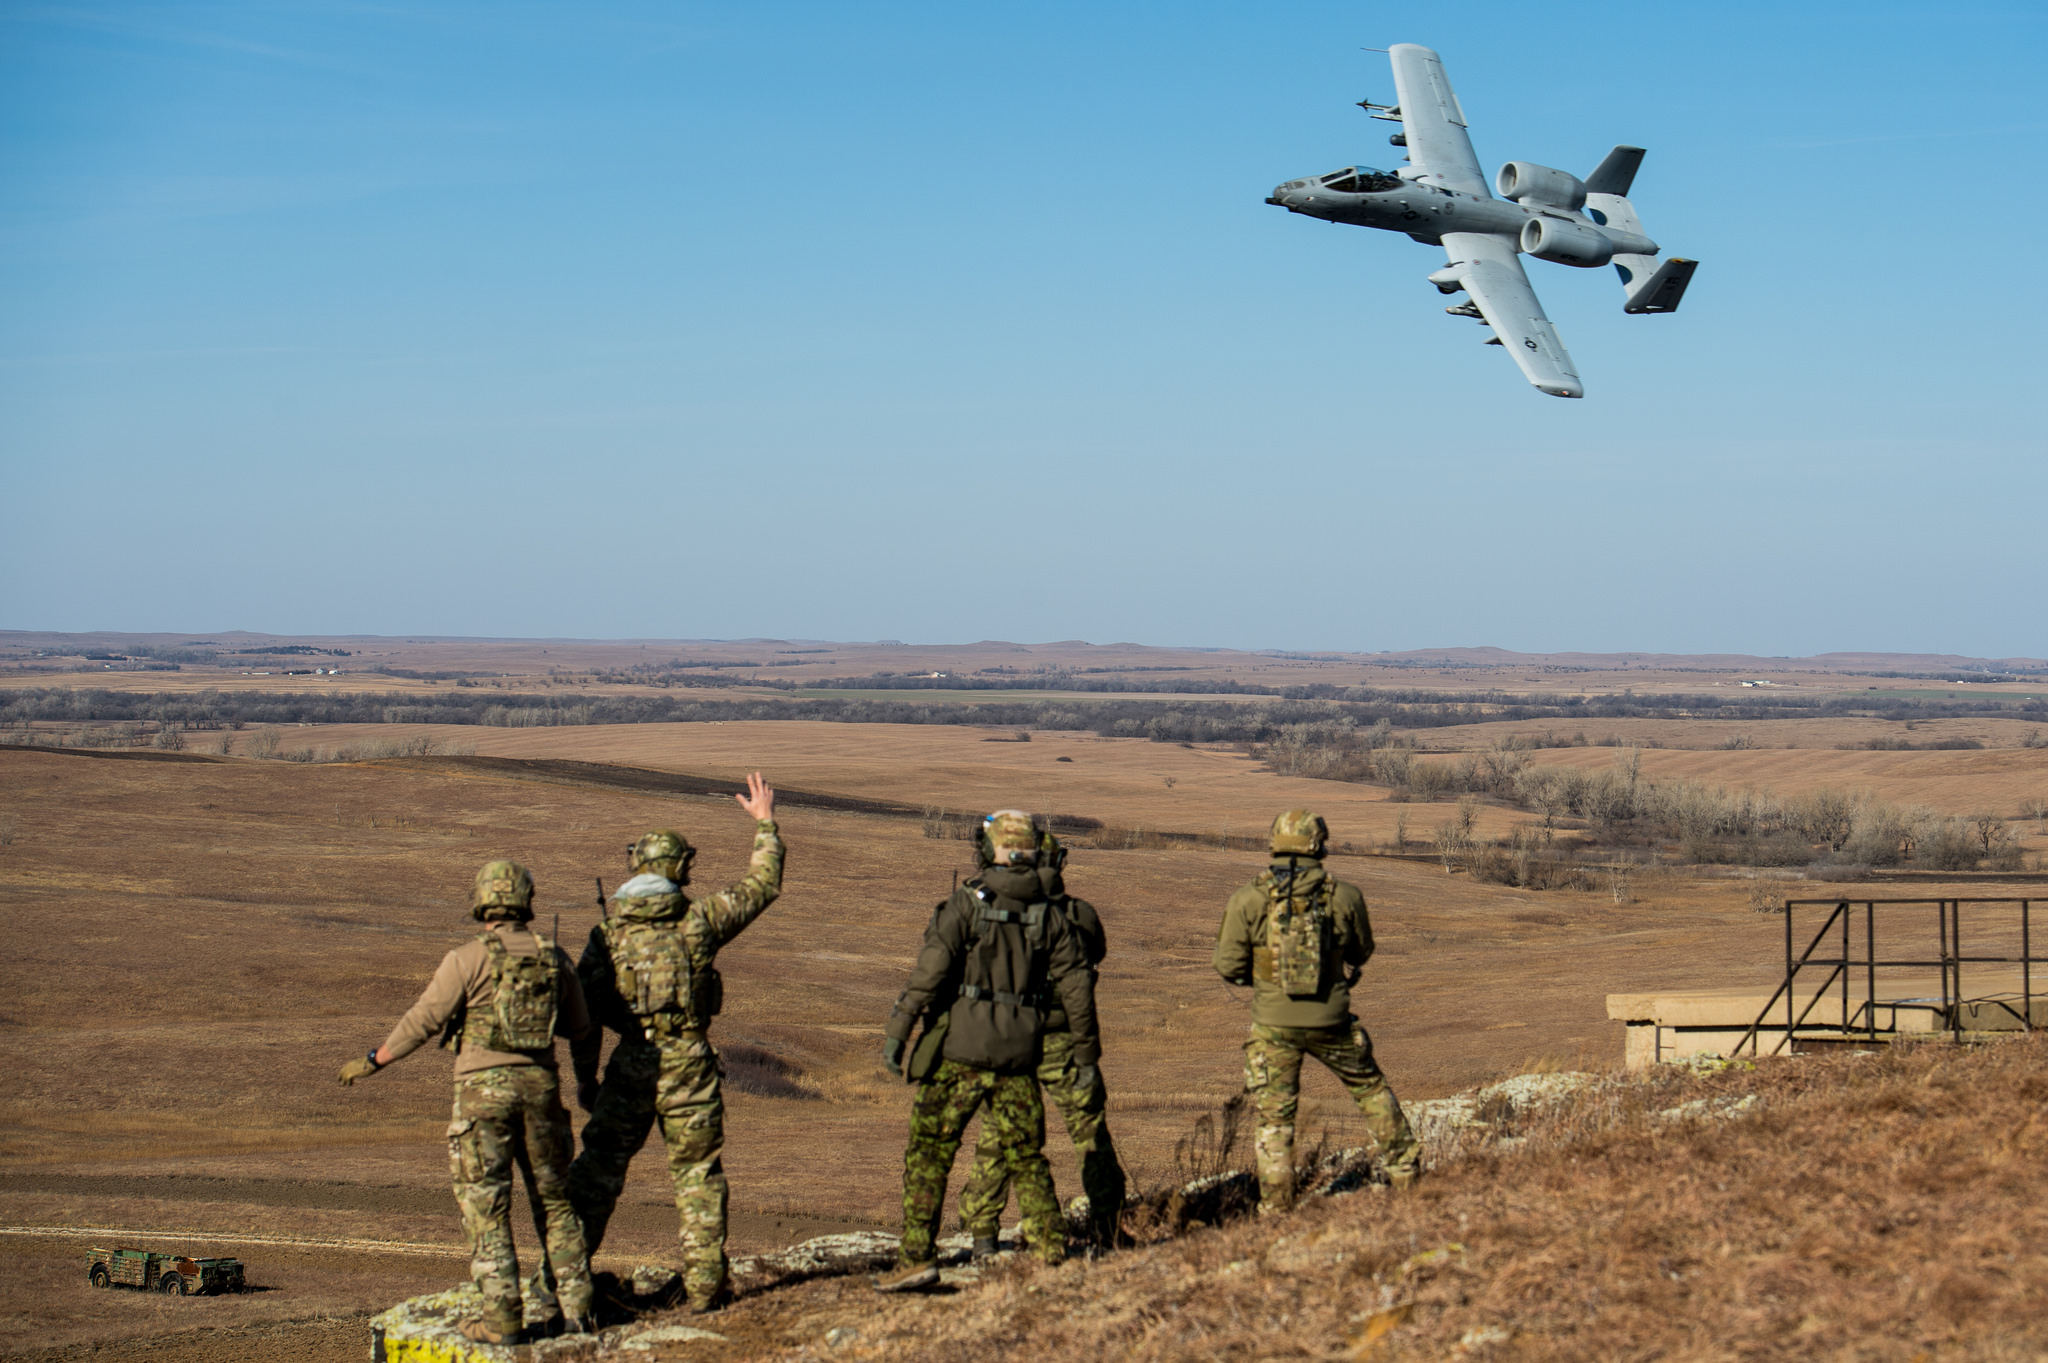 Members of the Oklahoma National Guard's 146th Air Support Operations Squadron and Estonian tactical air control party specialists acknowledge an A-10 Thunderbolt II during a show of force after completing close-air support training at Smoky Hill Air National Guard Range in Salina, Kan., Dec. 13, 2017. The Estonian TACPs traveled to the U.S. to work alongside members of the 146 ASOS to complete upgrade training and enhance multi-national relationships. This was the first time the 146 ASOS hosted the Estonian TACPs. (Sgt. Tyler Woodward/Air National Guard)